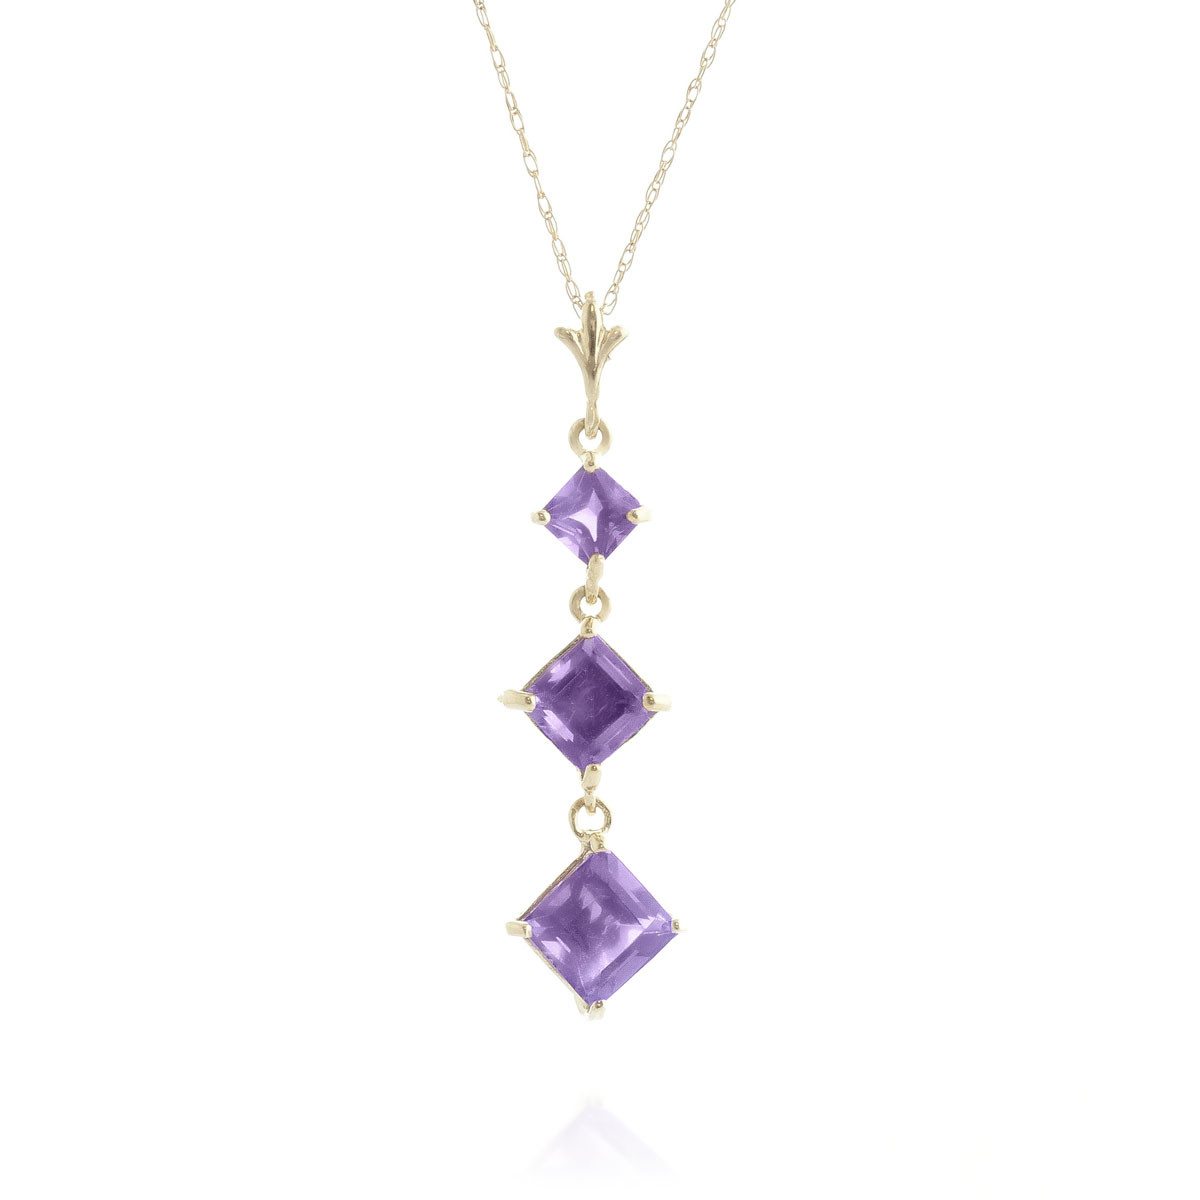 Amethyst Three Stone Pendant Necklace 2.4 ctw in 9ct Gold